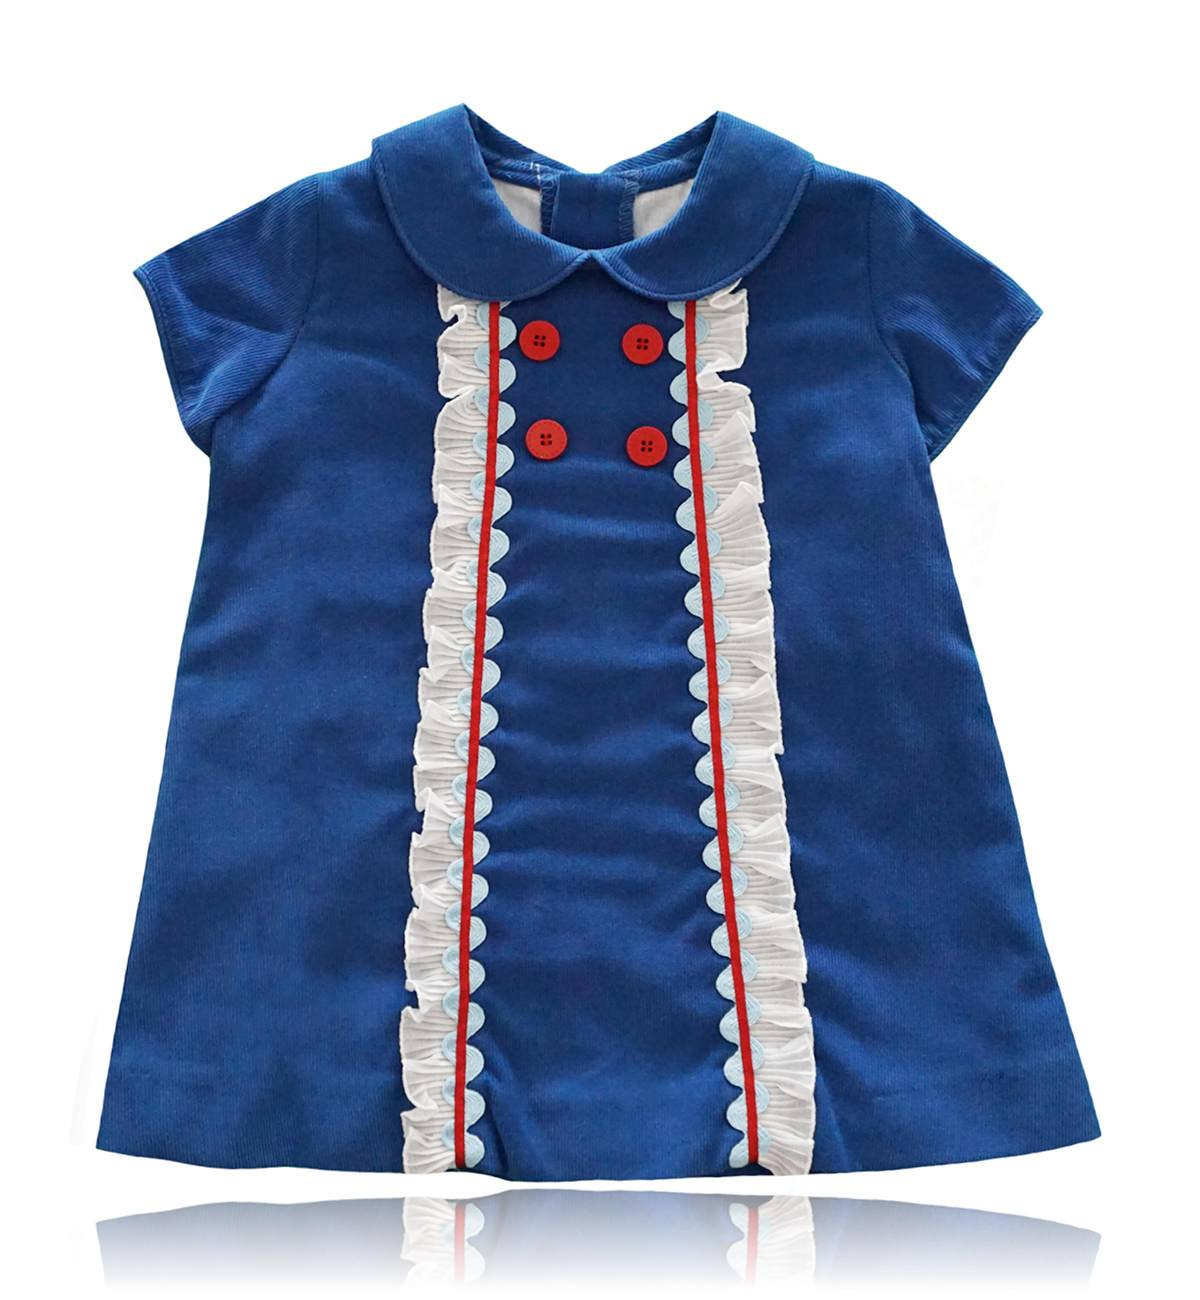 Spanish baby clothes | baby Dress | Chloe |babymaC  - 1